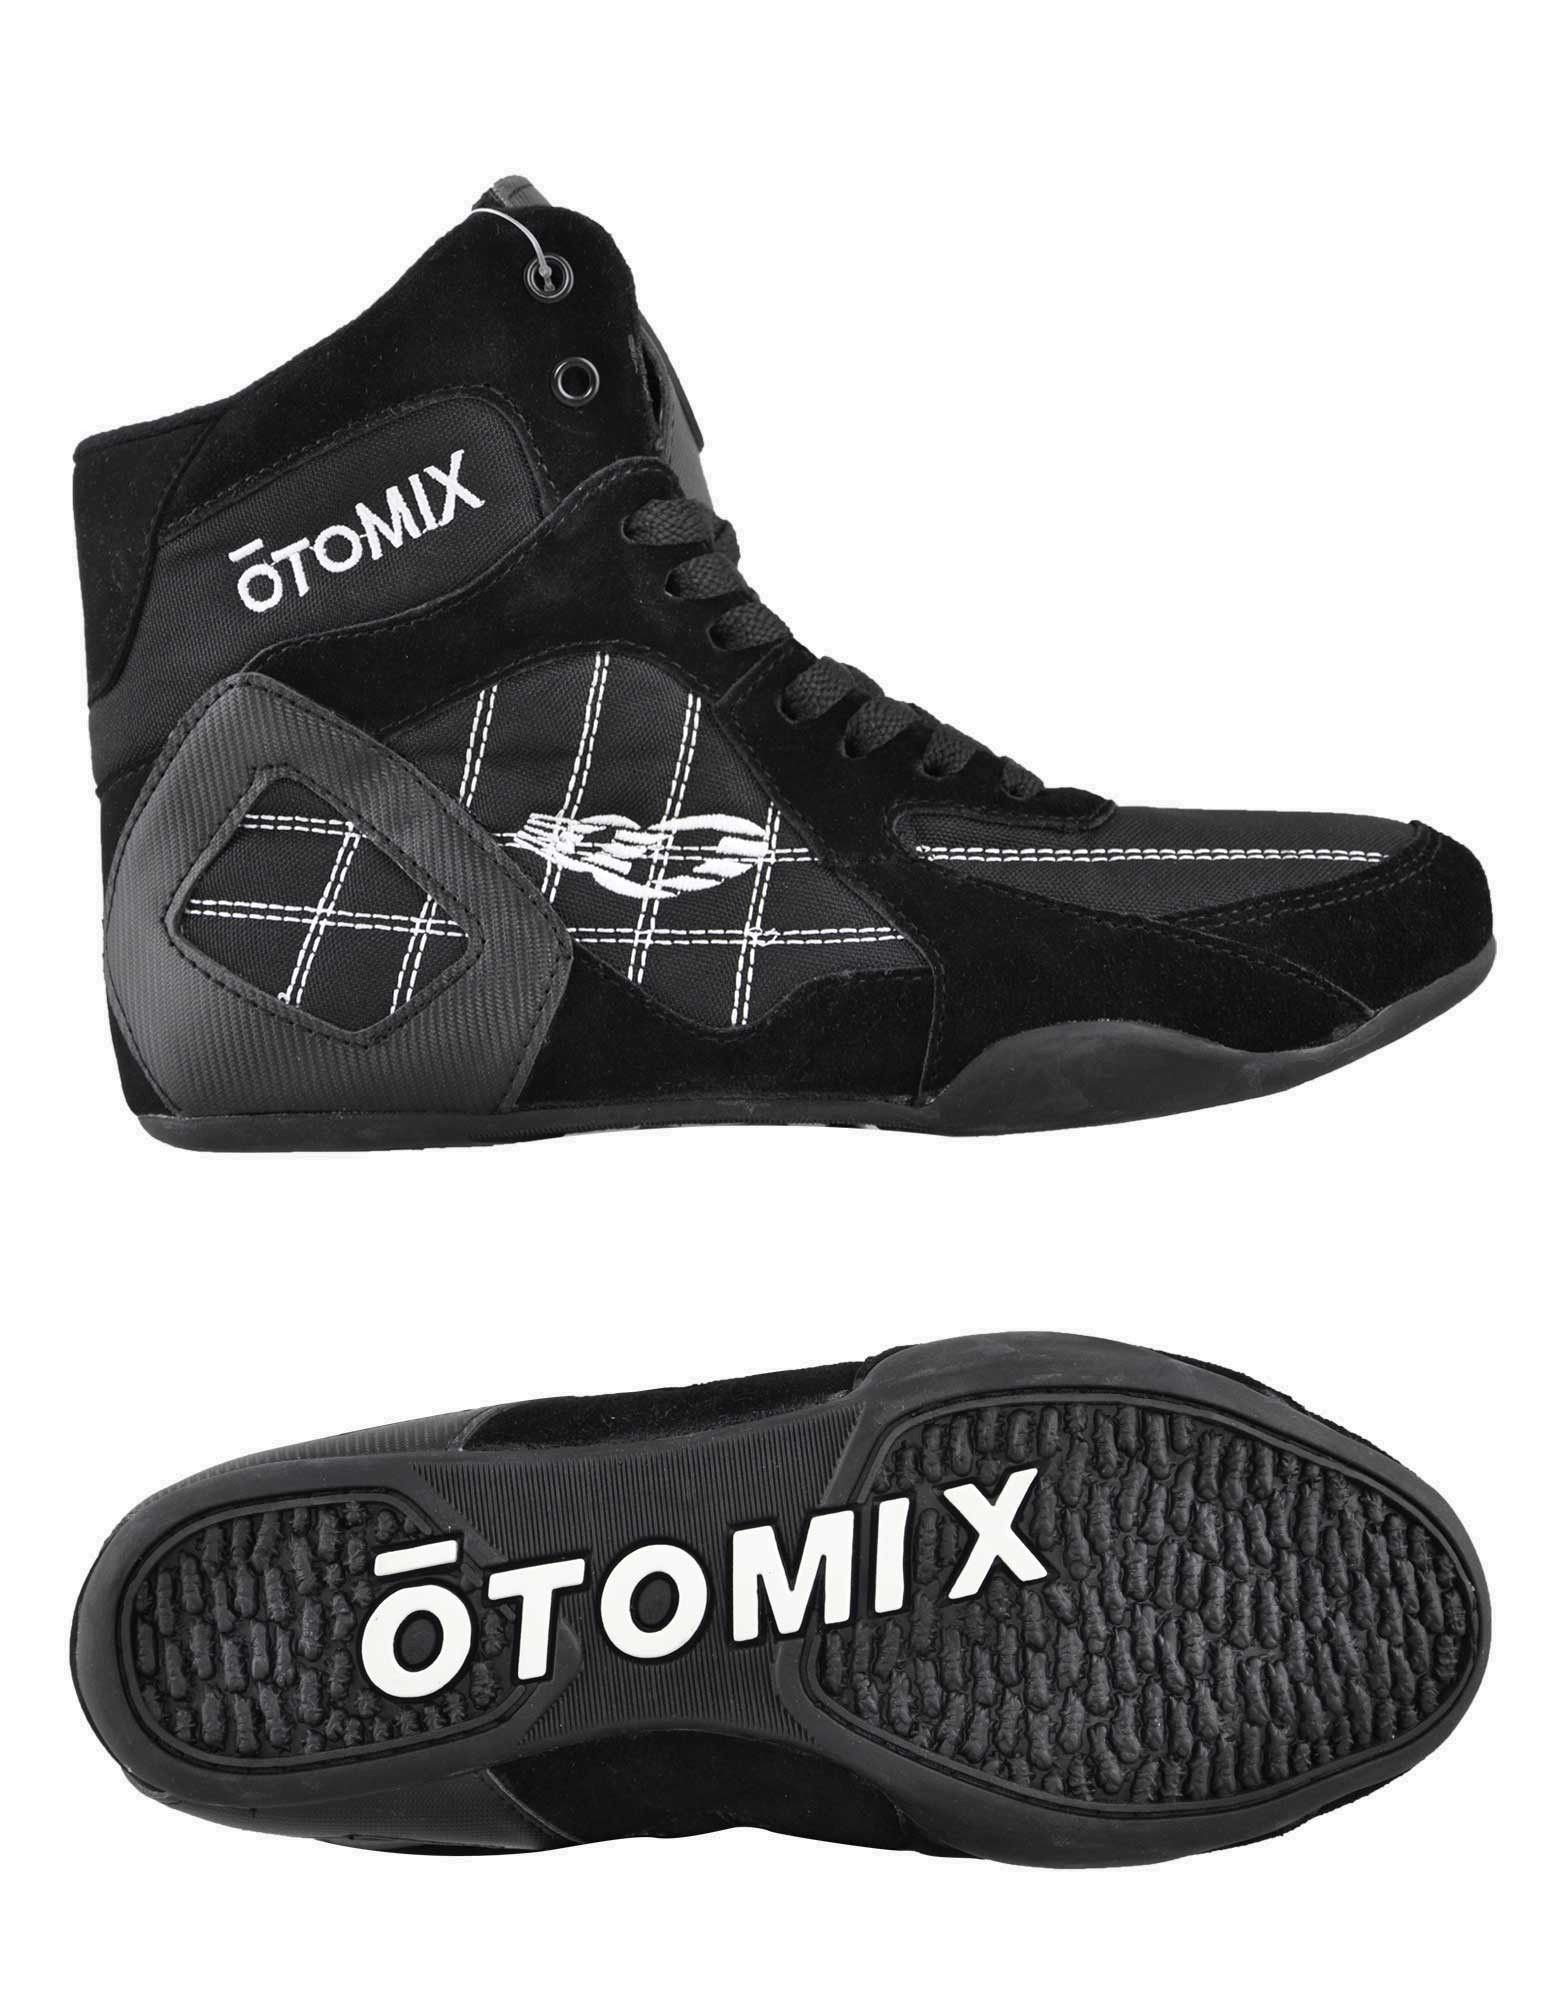 Buy Otomix Shoes